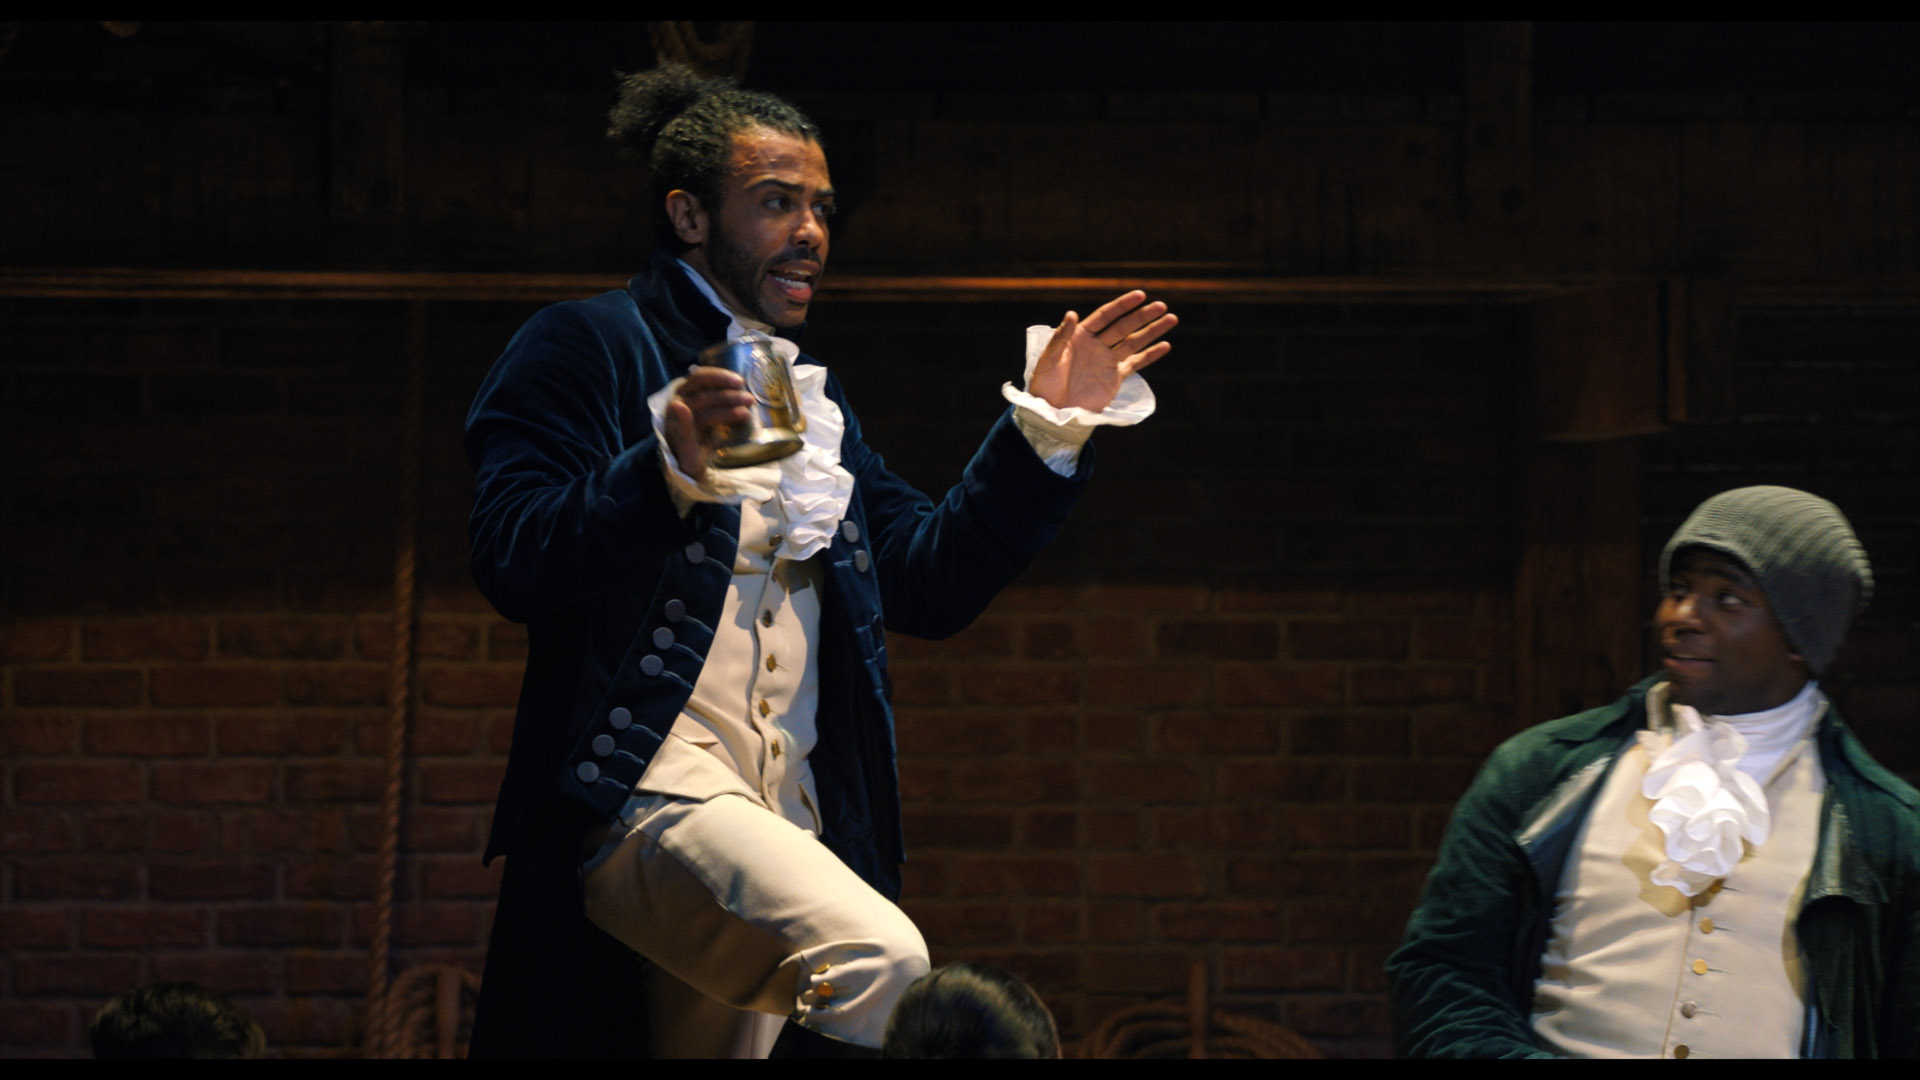 ART OF THE CUT with the editor of Hamilton 16